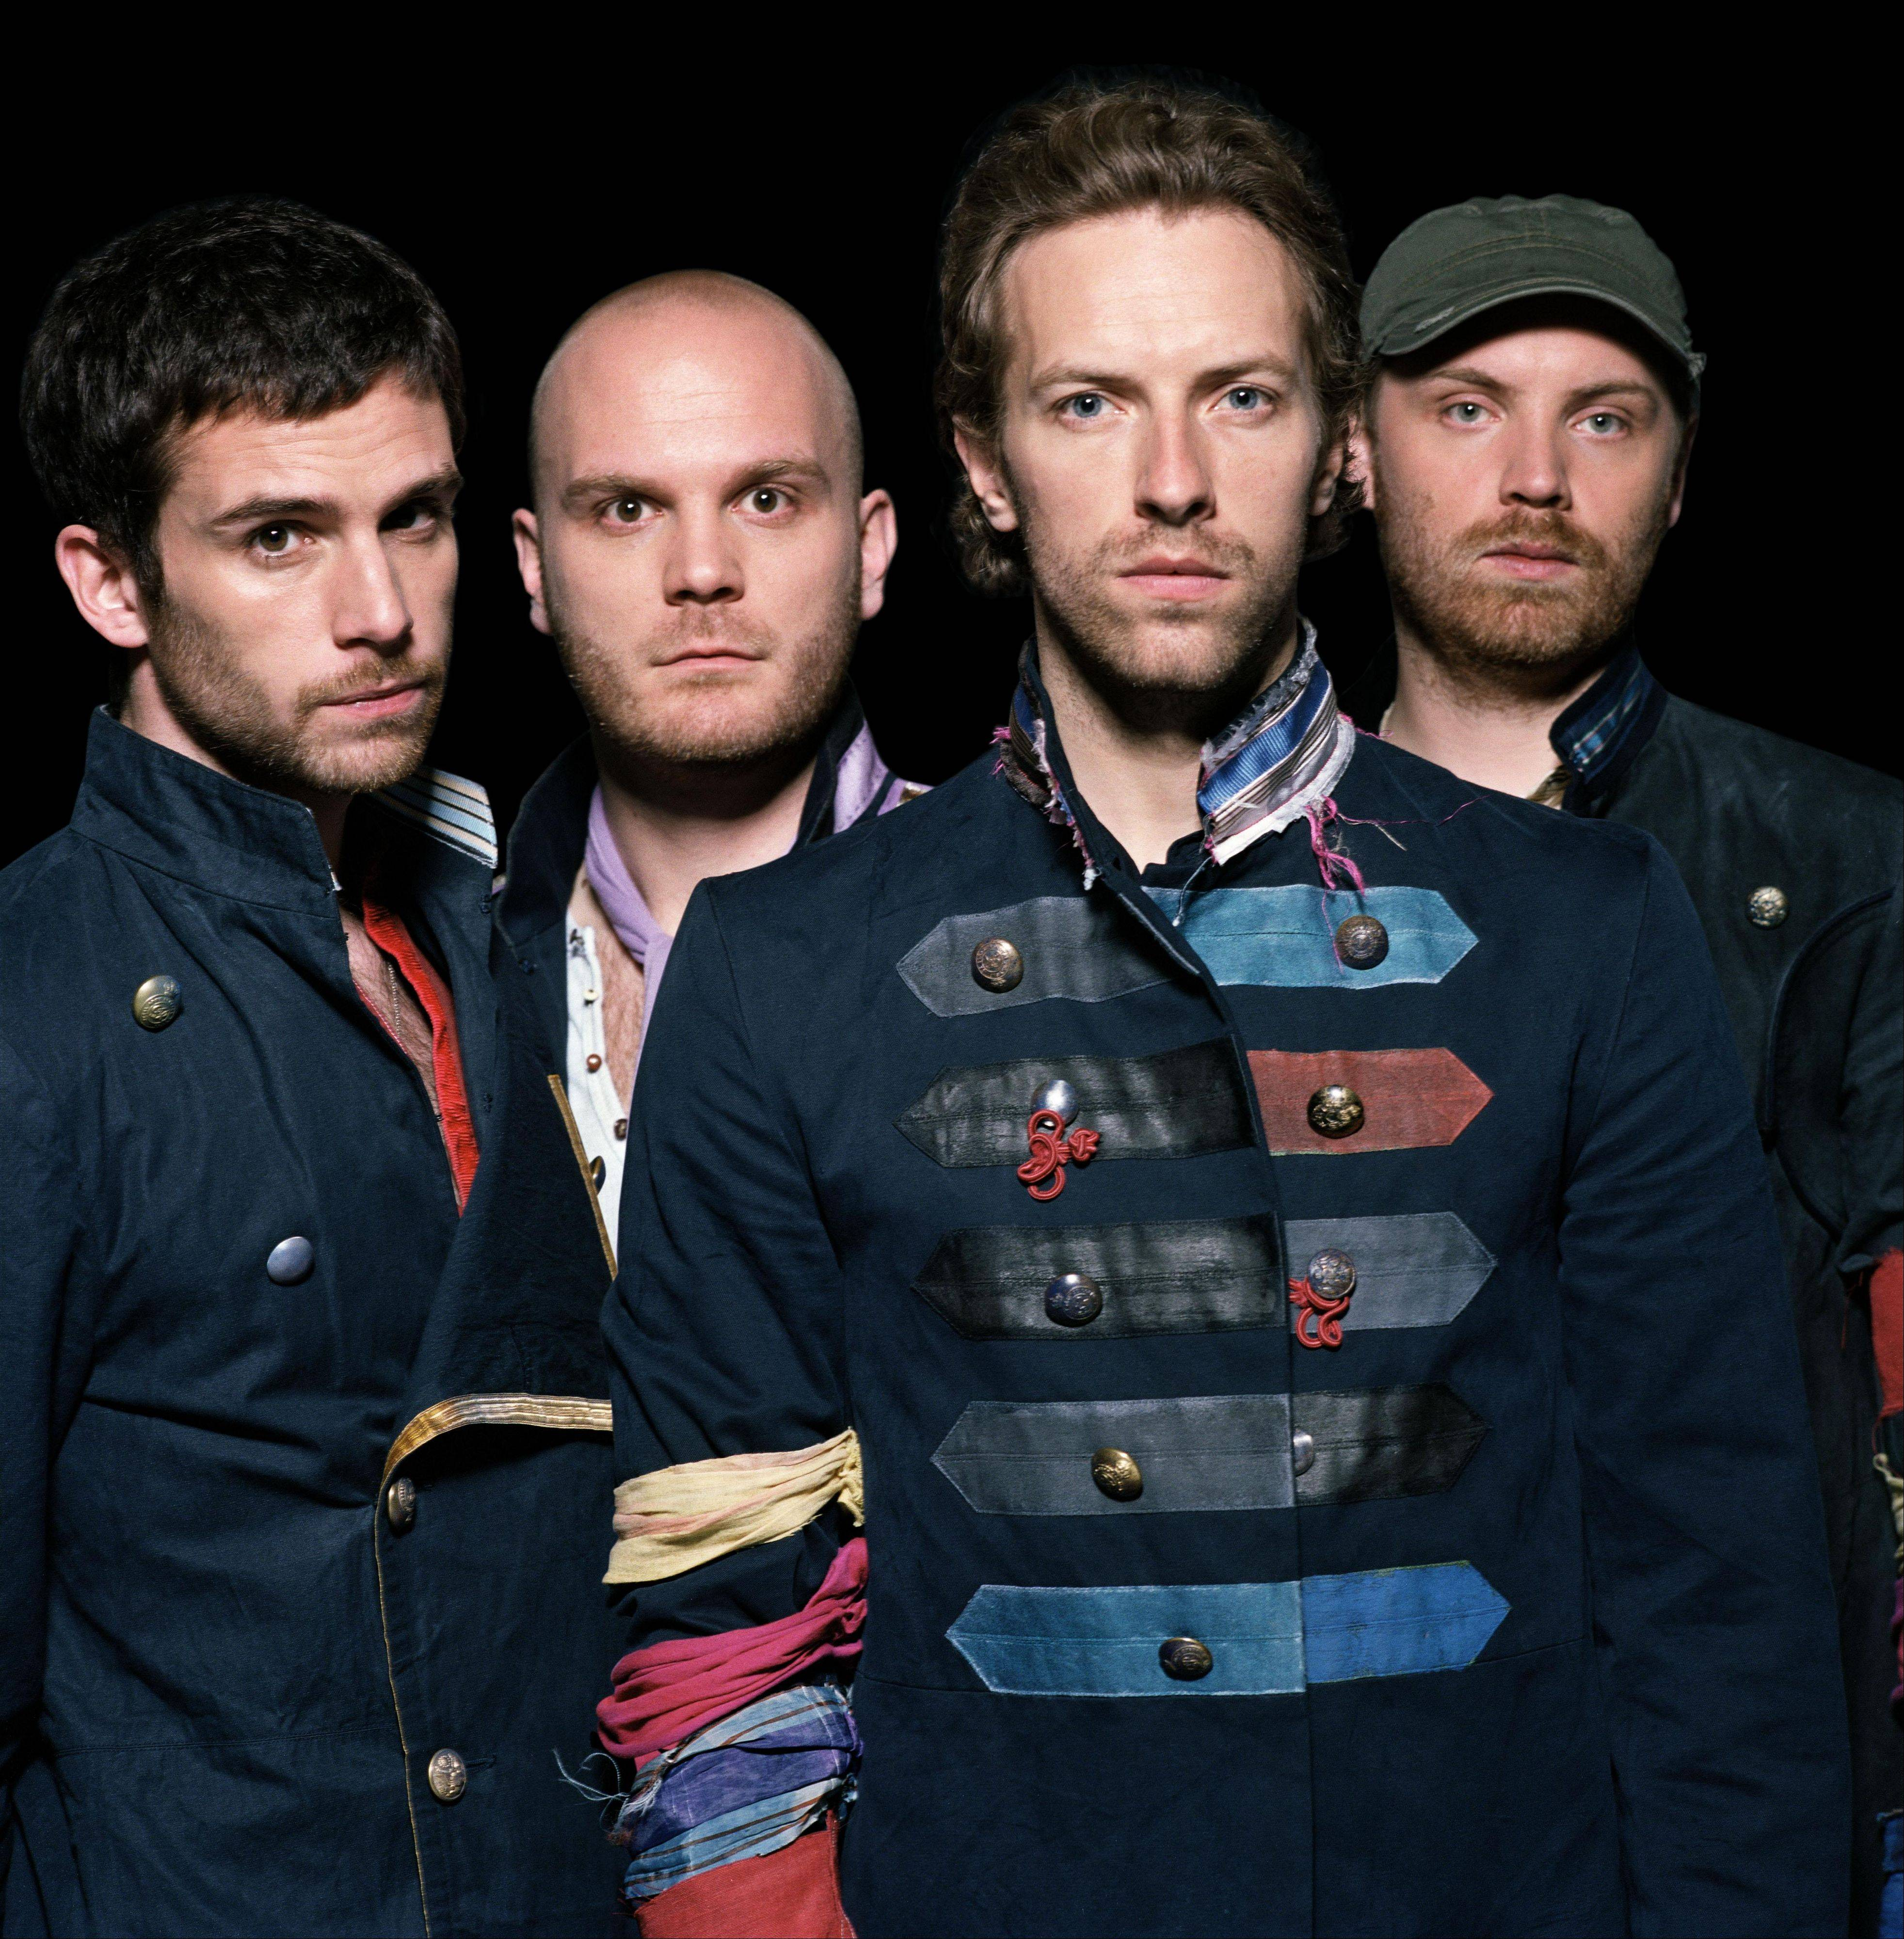 The massively popular Coldplay is the kind of big mainstream headliner the new version of Lollapalooza seeks out.